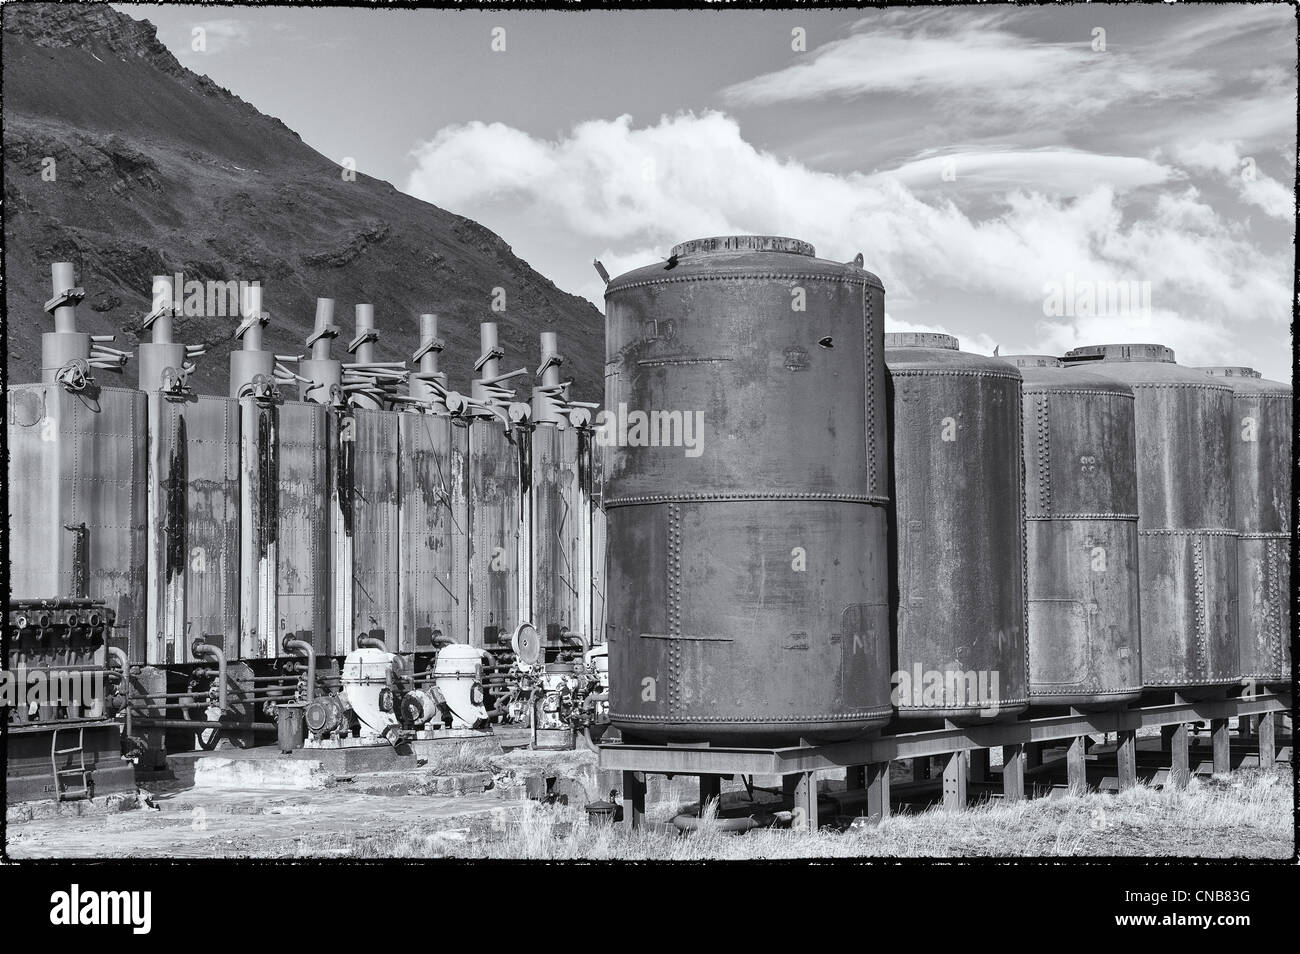 Rusted old metal tanks, Former Grytviken Whaling Station, South Georgia - Stock Image